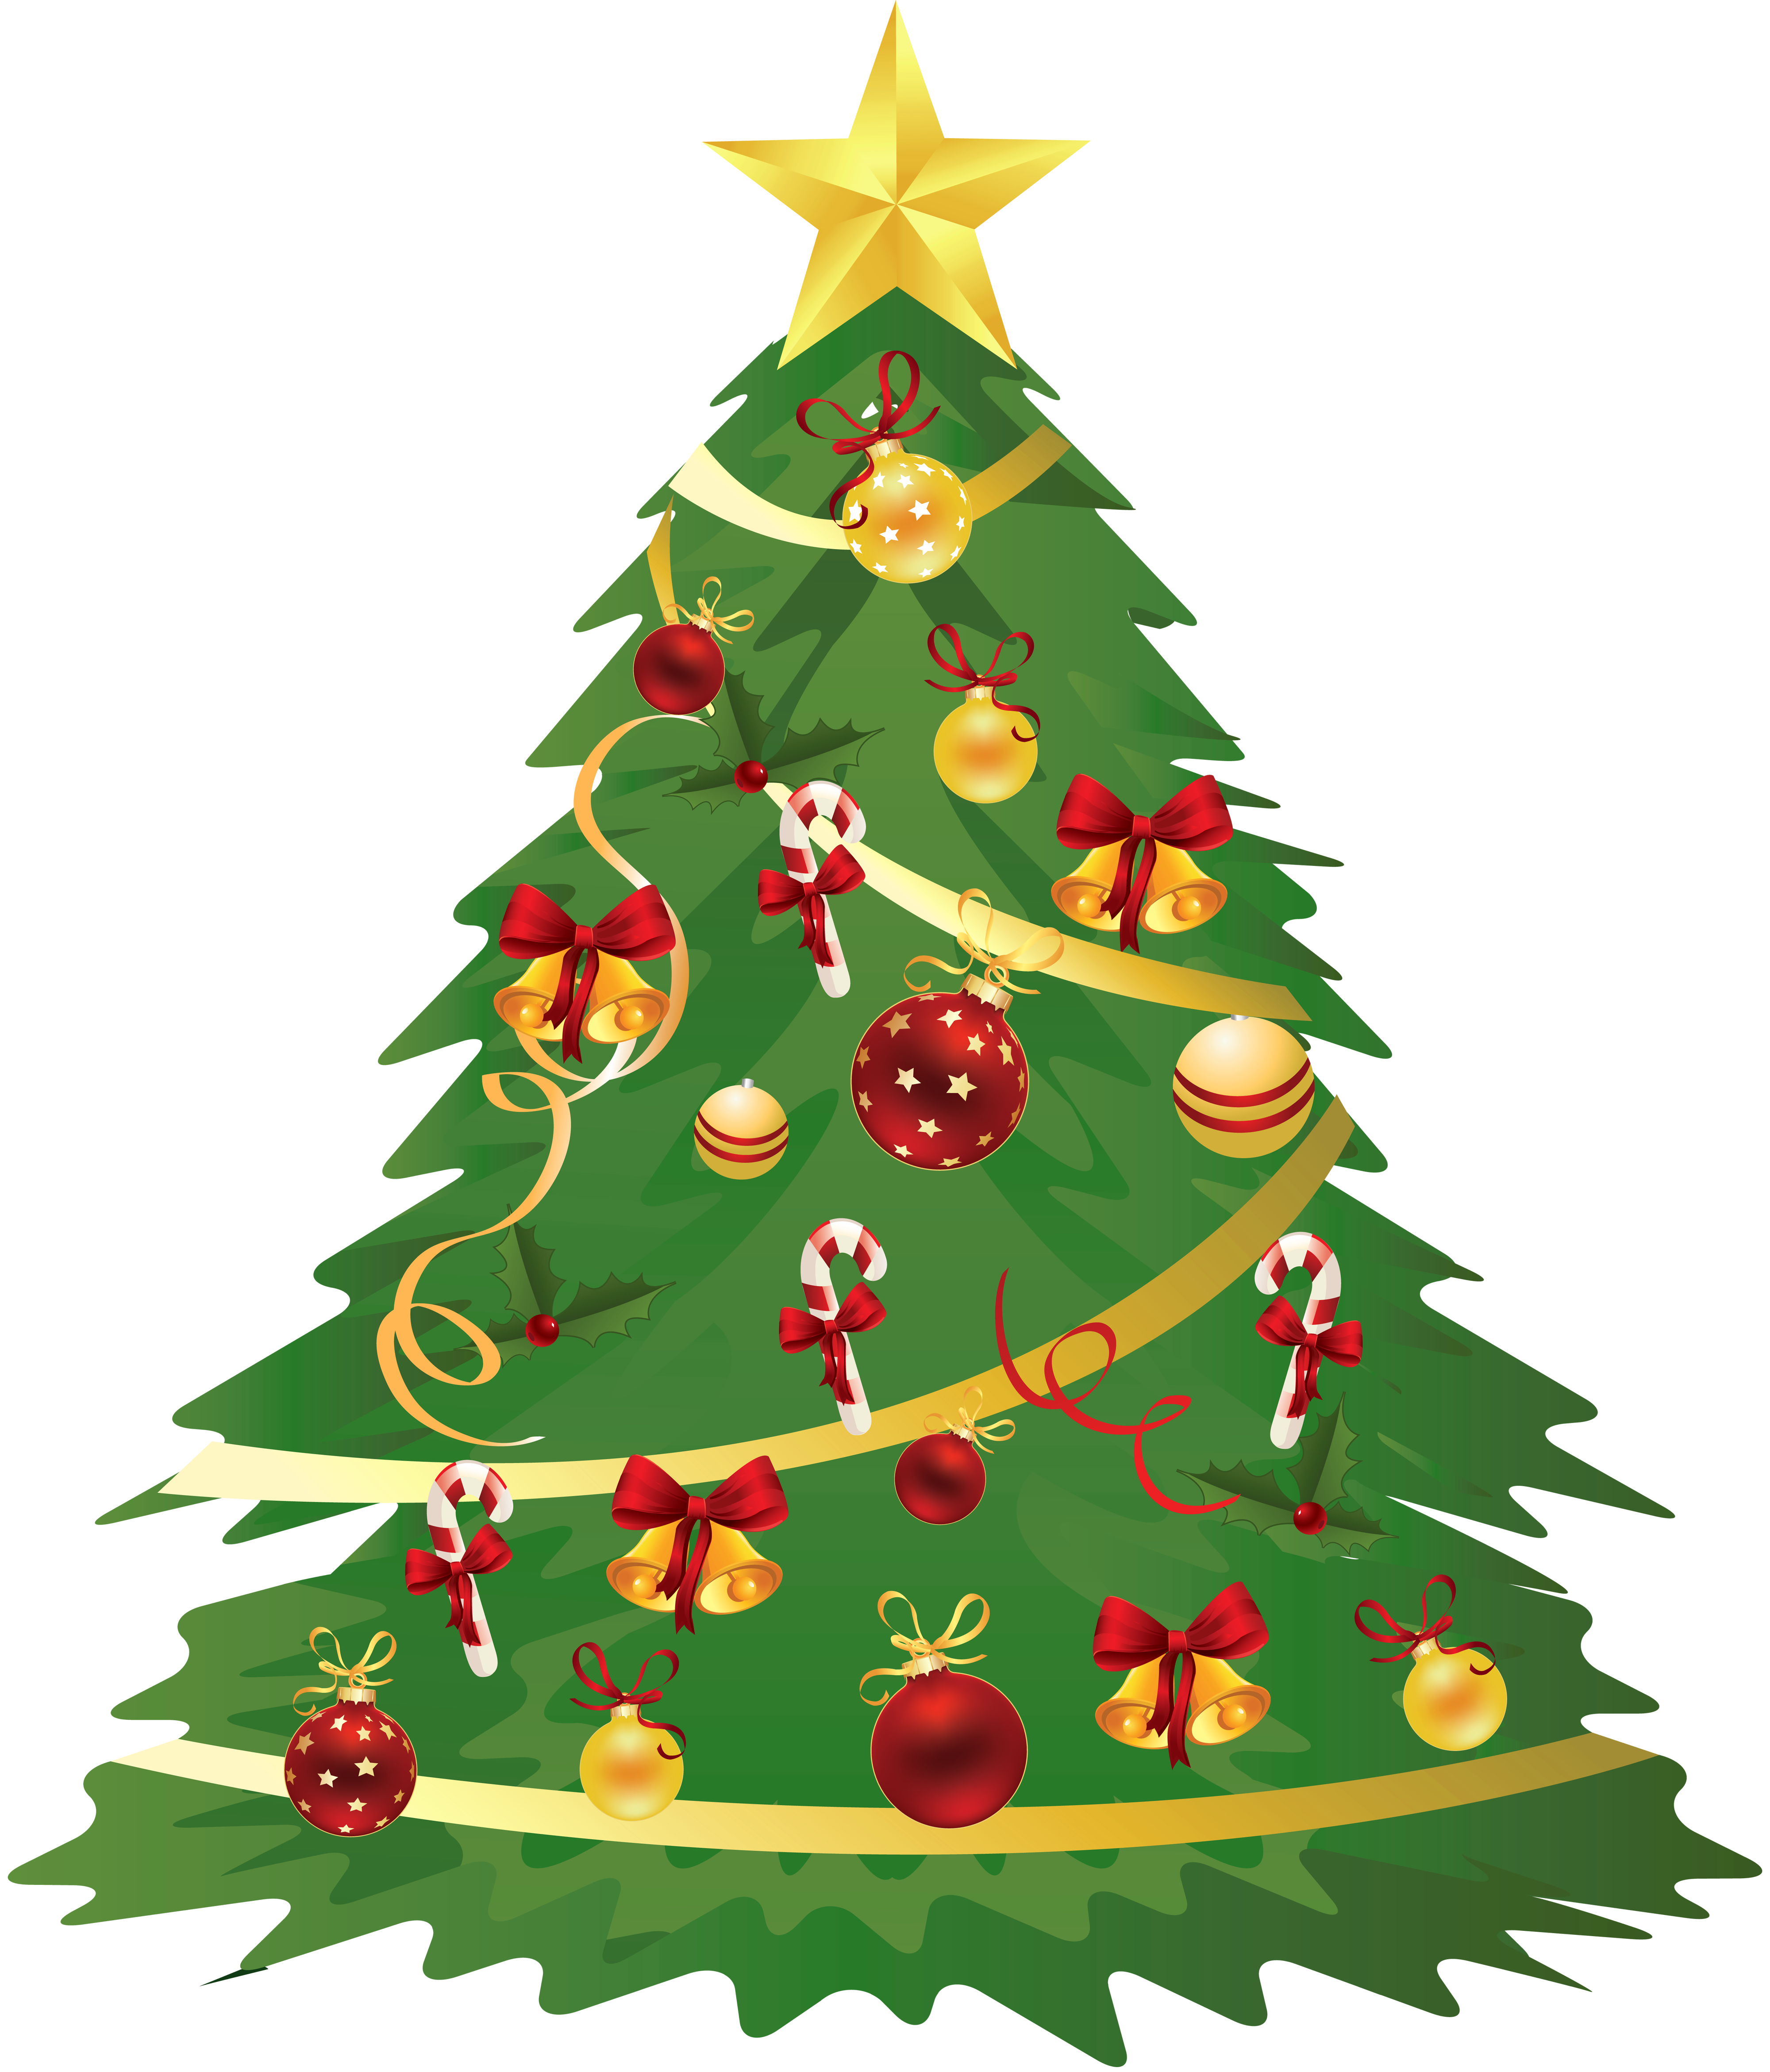 Christmas Tree clipart clear background · with Ornaments Canes Transparent